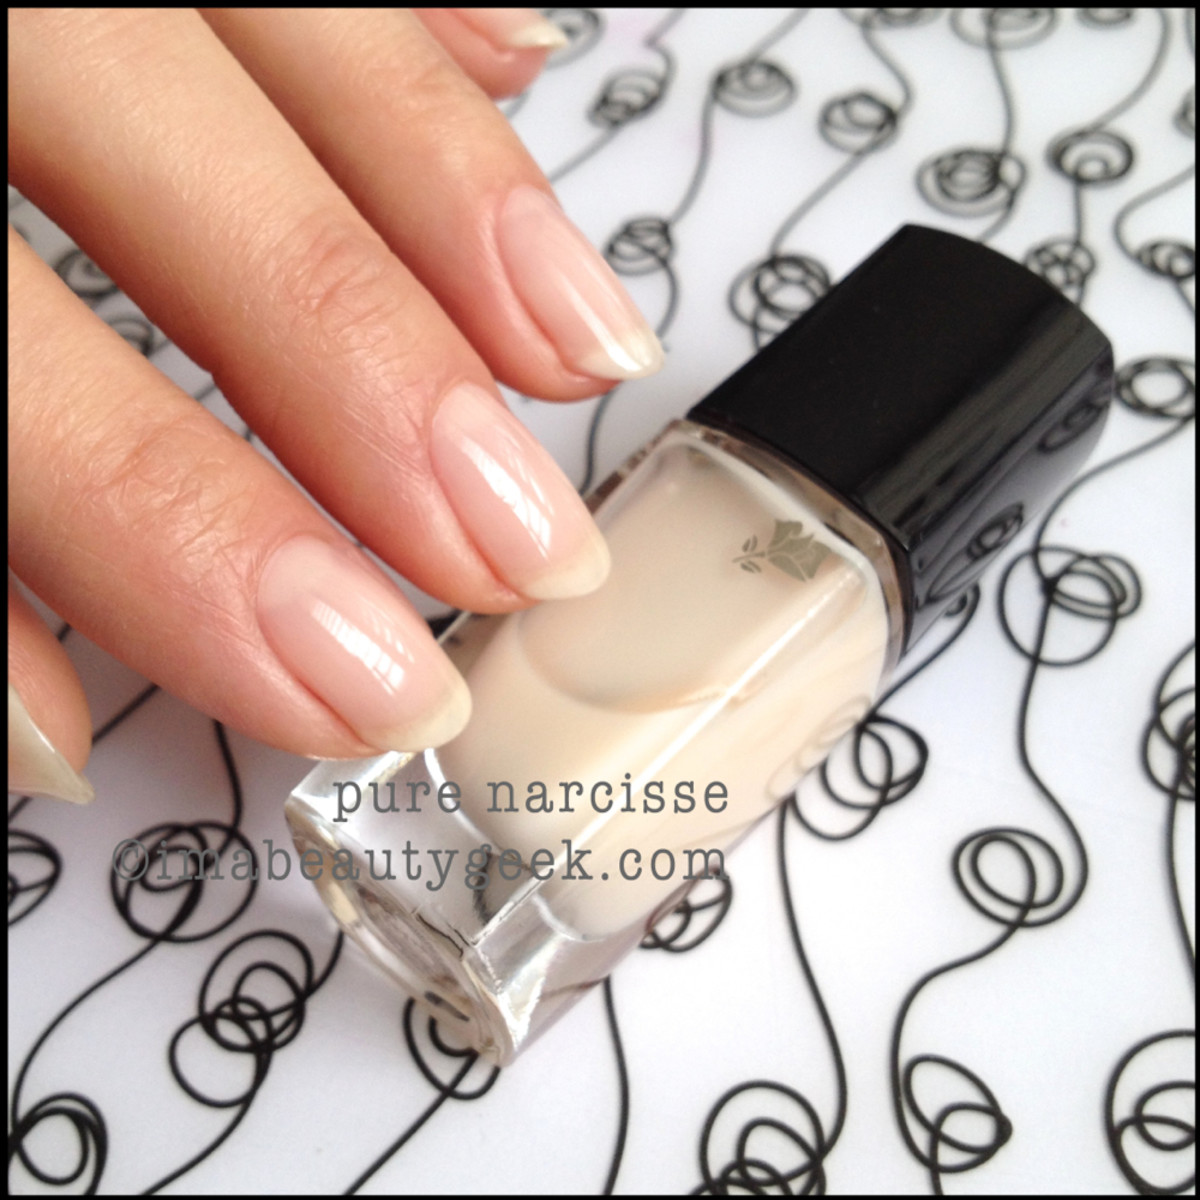 Lancome polish Pure Narcisse